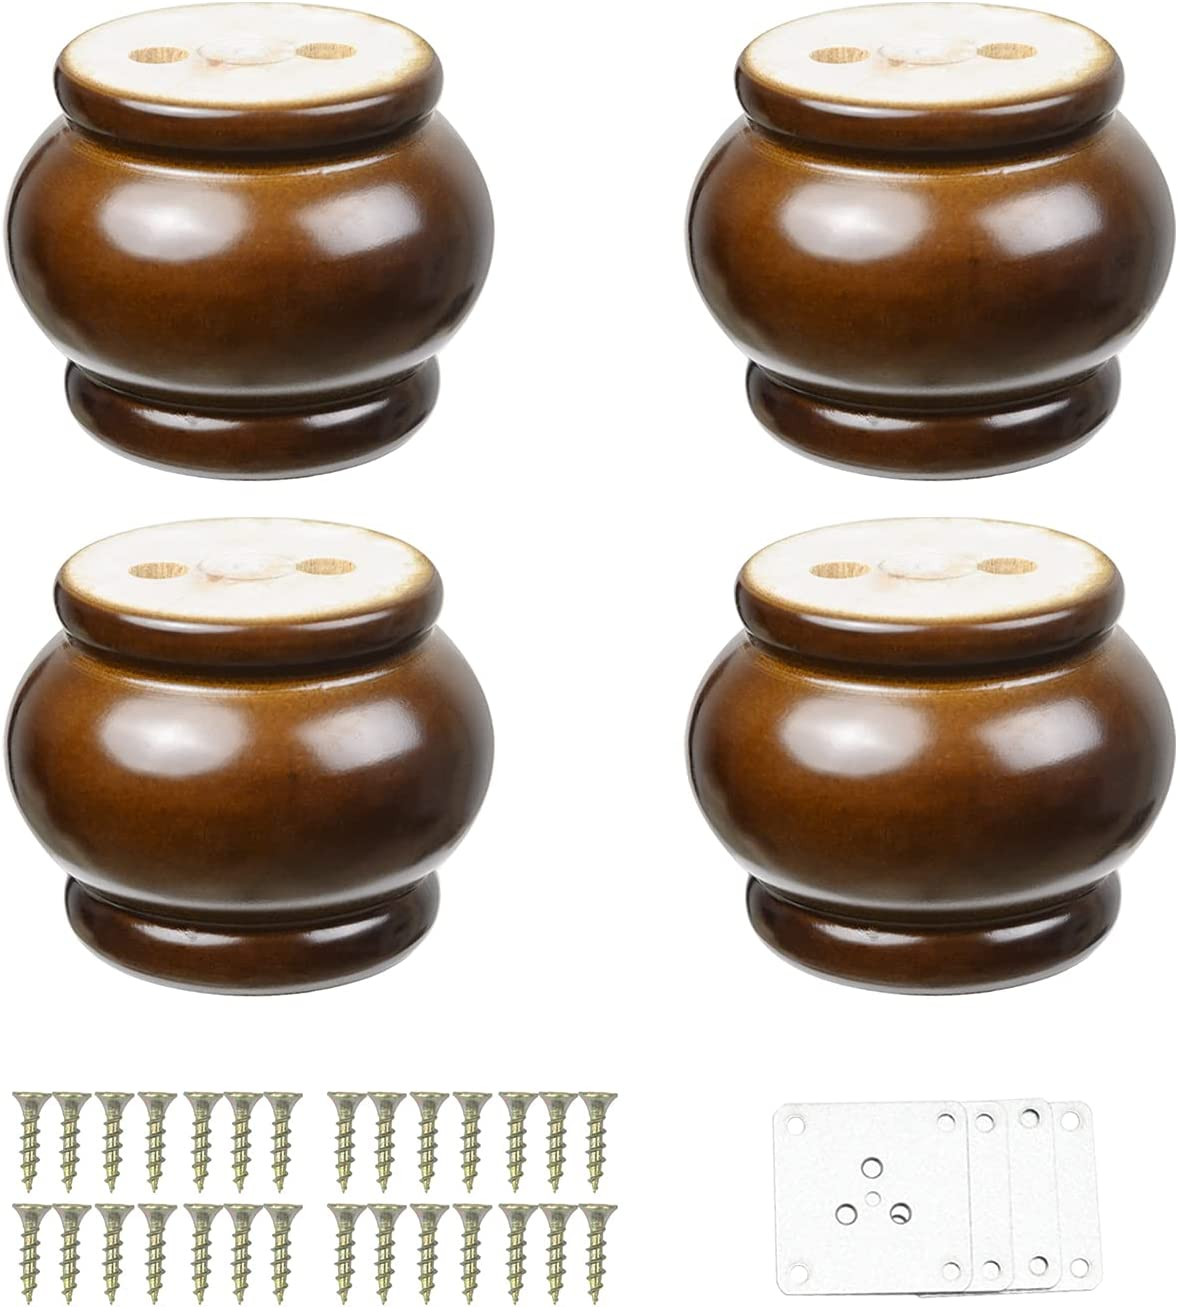 4PCS Round Furniture Bun Feet Walnut Finished 2.56inch Tall Wood Sofa Legs Replacement for Armchair Couch Sofa Cabinet Chair Loveseat Ottoman Dresser Legs